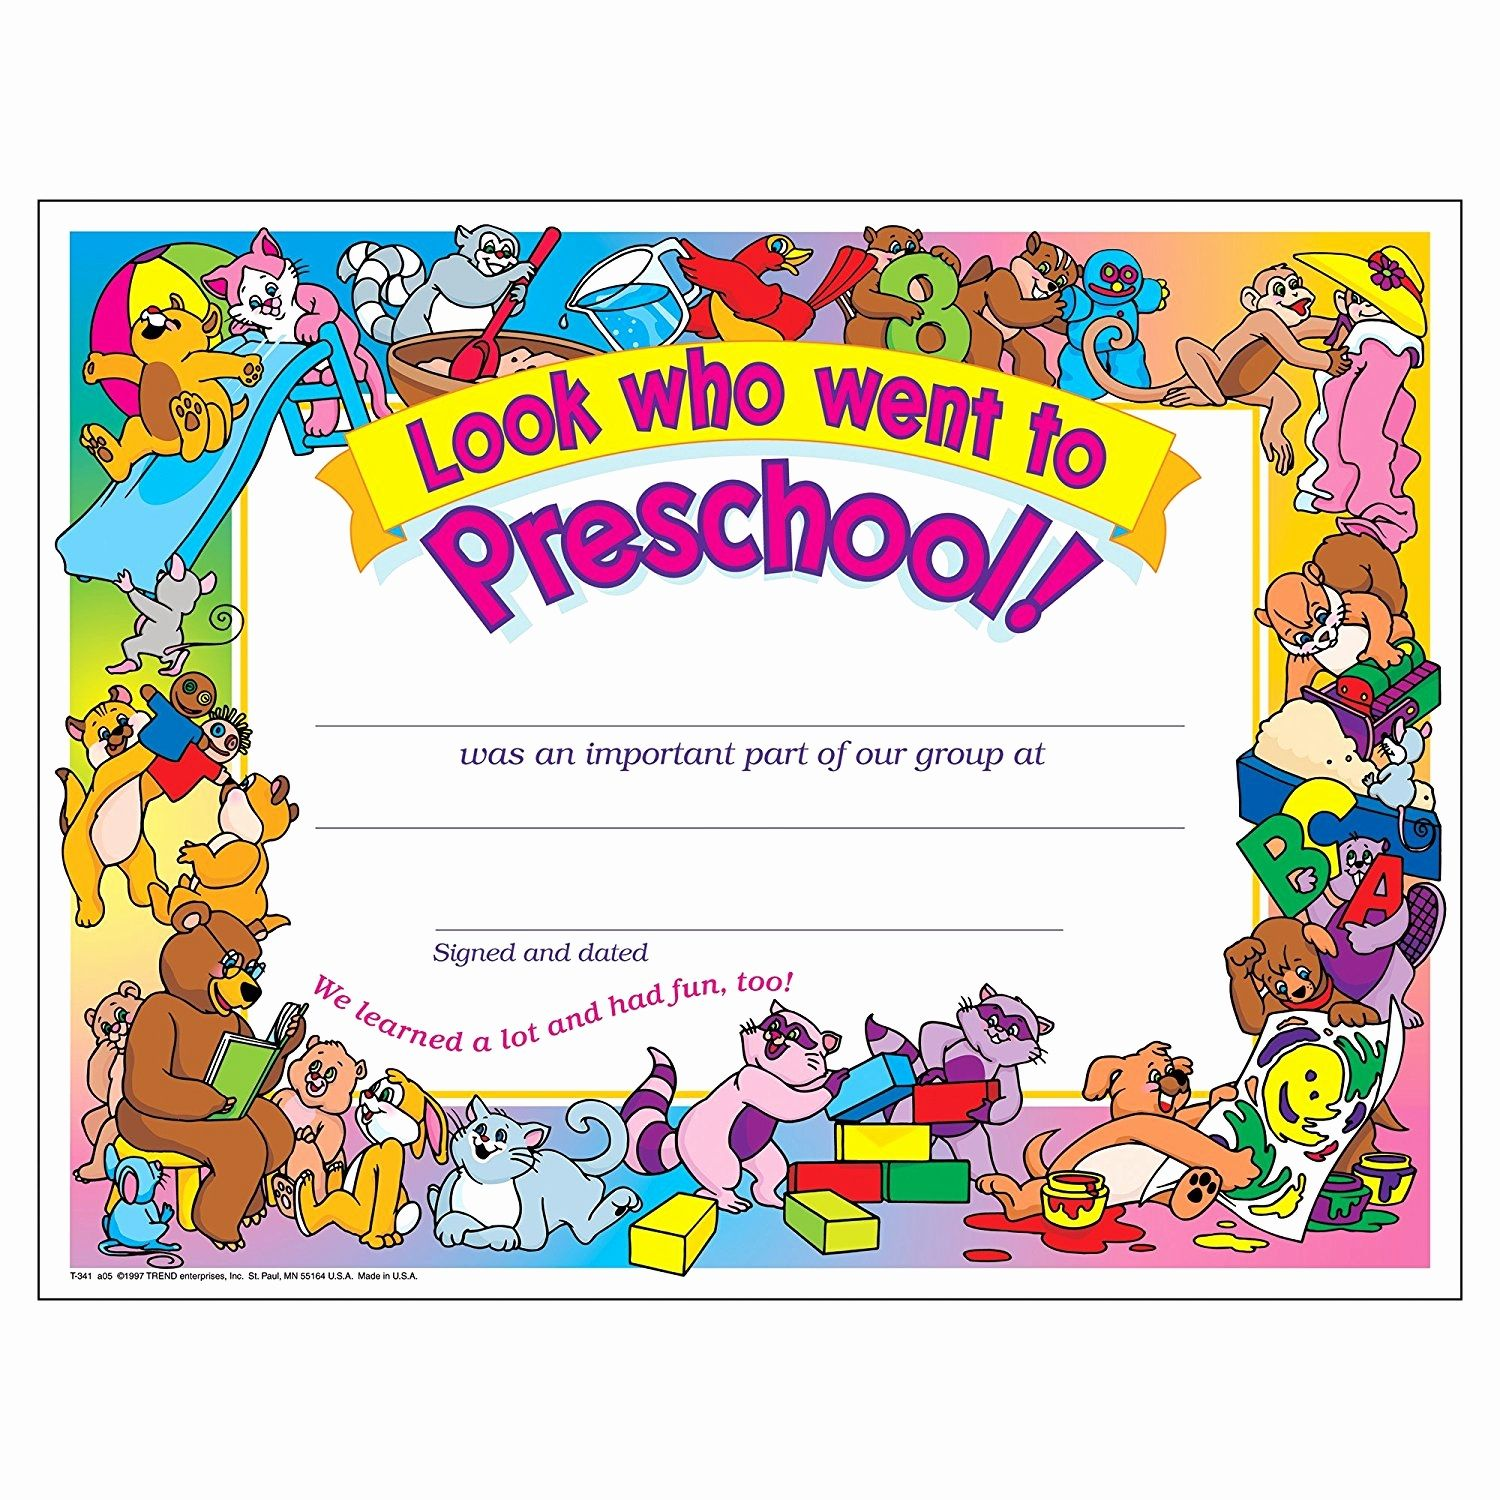 Preschool Certificate Templates Awesome Free Printable Preschool Certificates Monpence Preschool Award Preschool Certificates Preschool